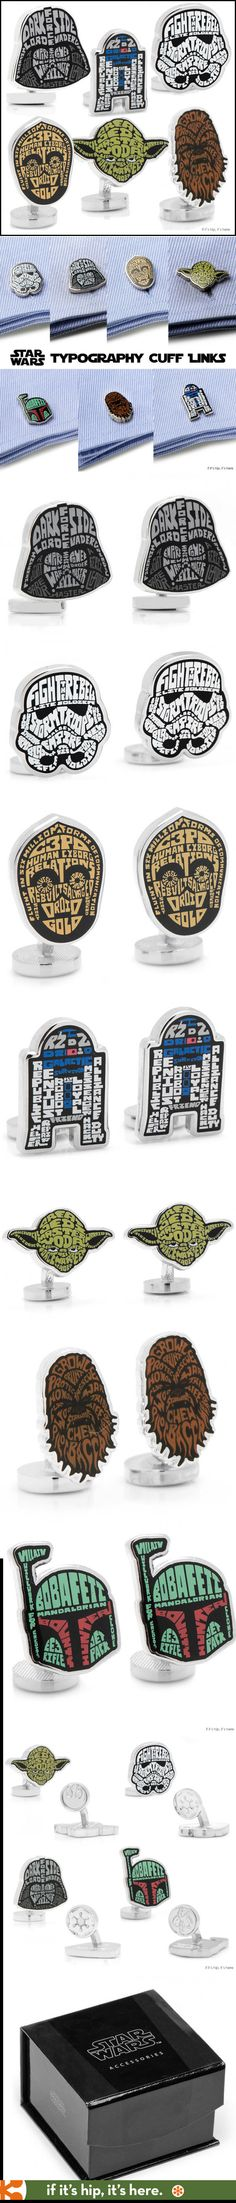 Star Wars Typography Cuff Links. Beautifully designed and in an official collector's box. #StarWars #Typography